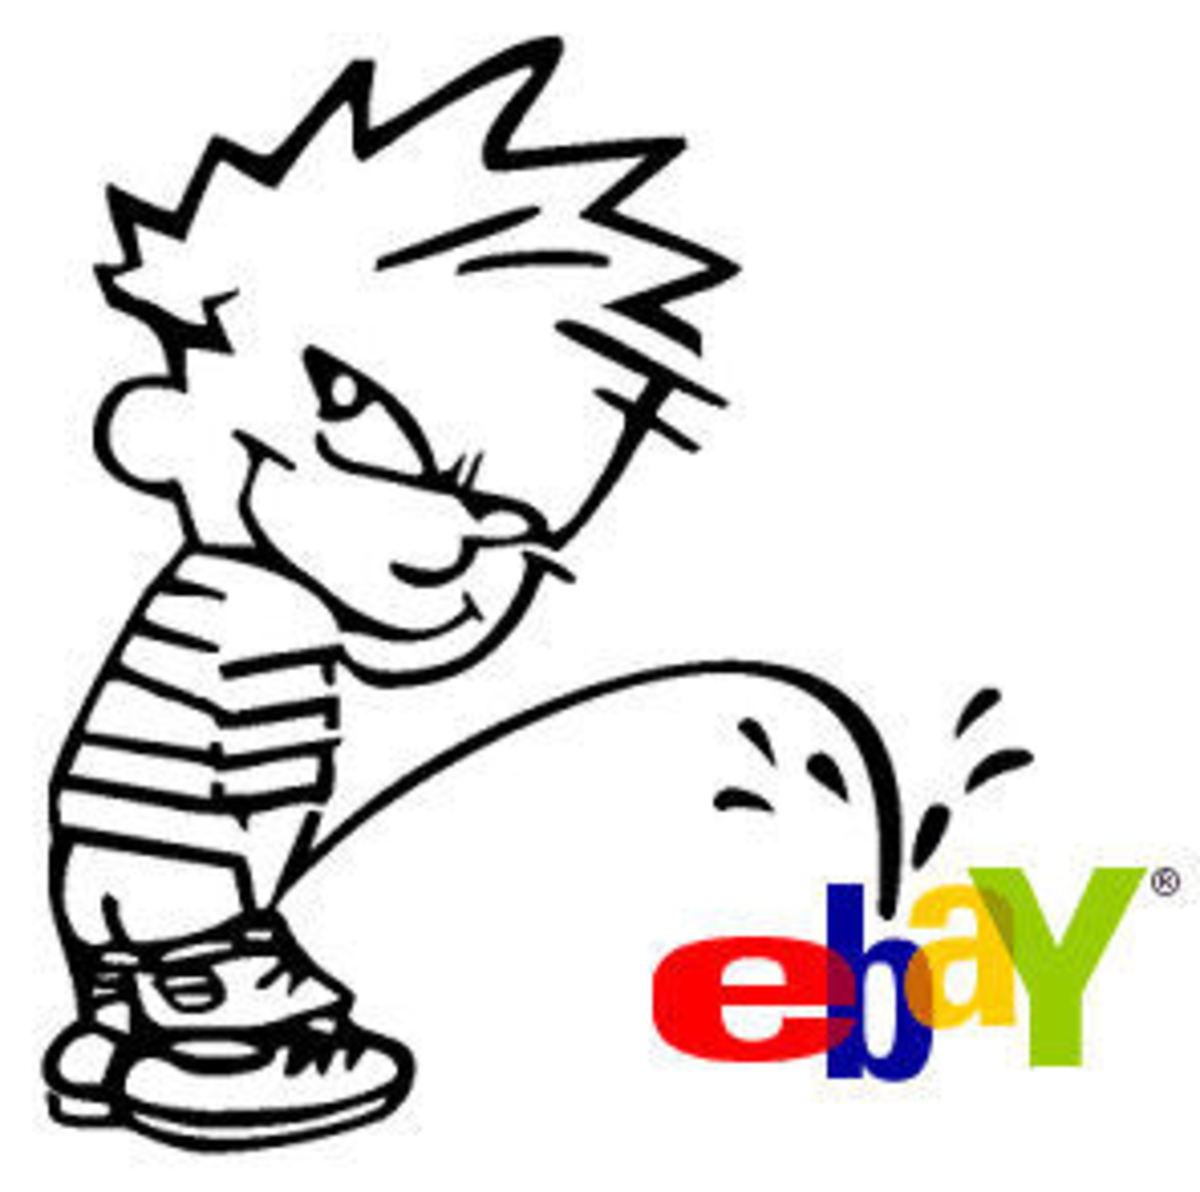 Ebay Secrets That People Need To Know About!